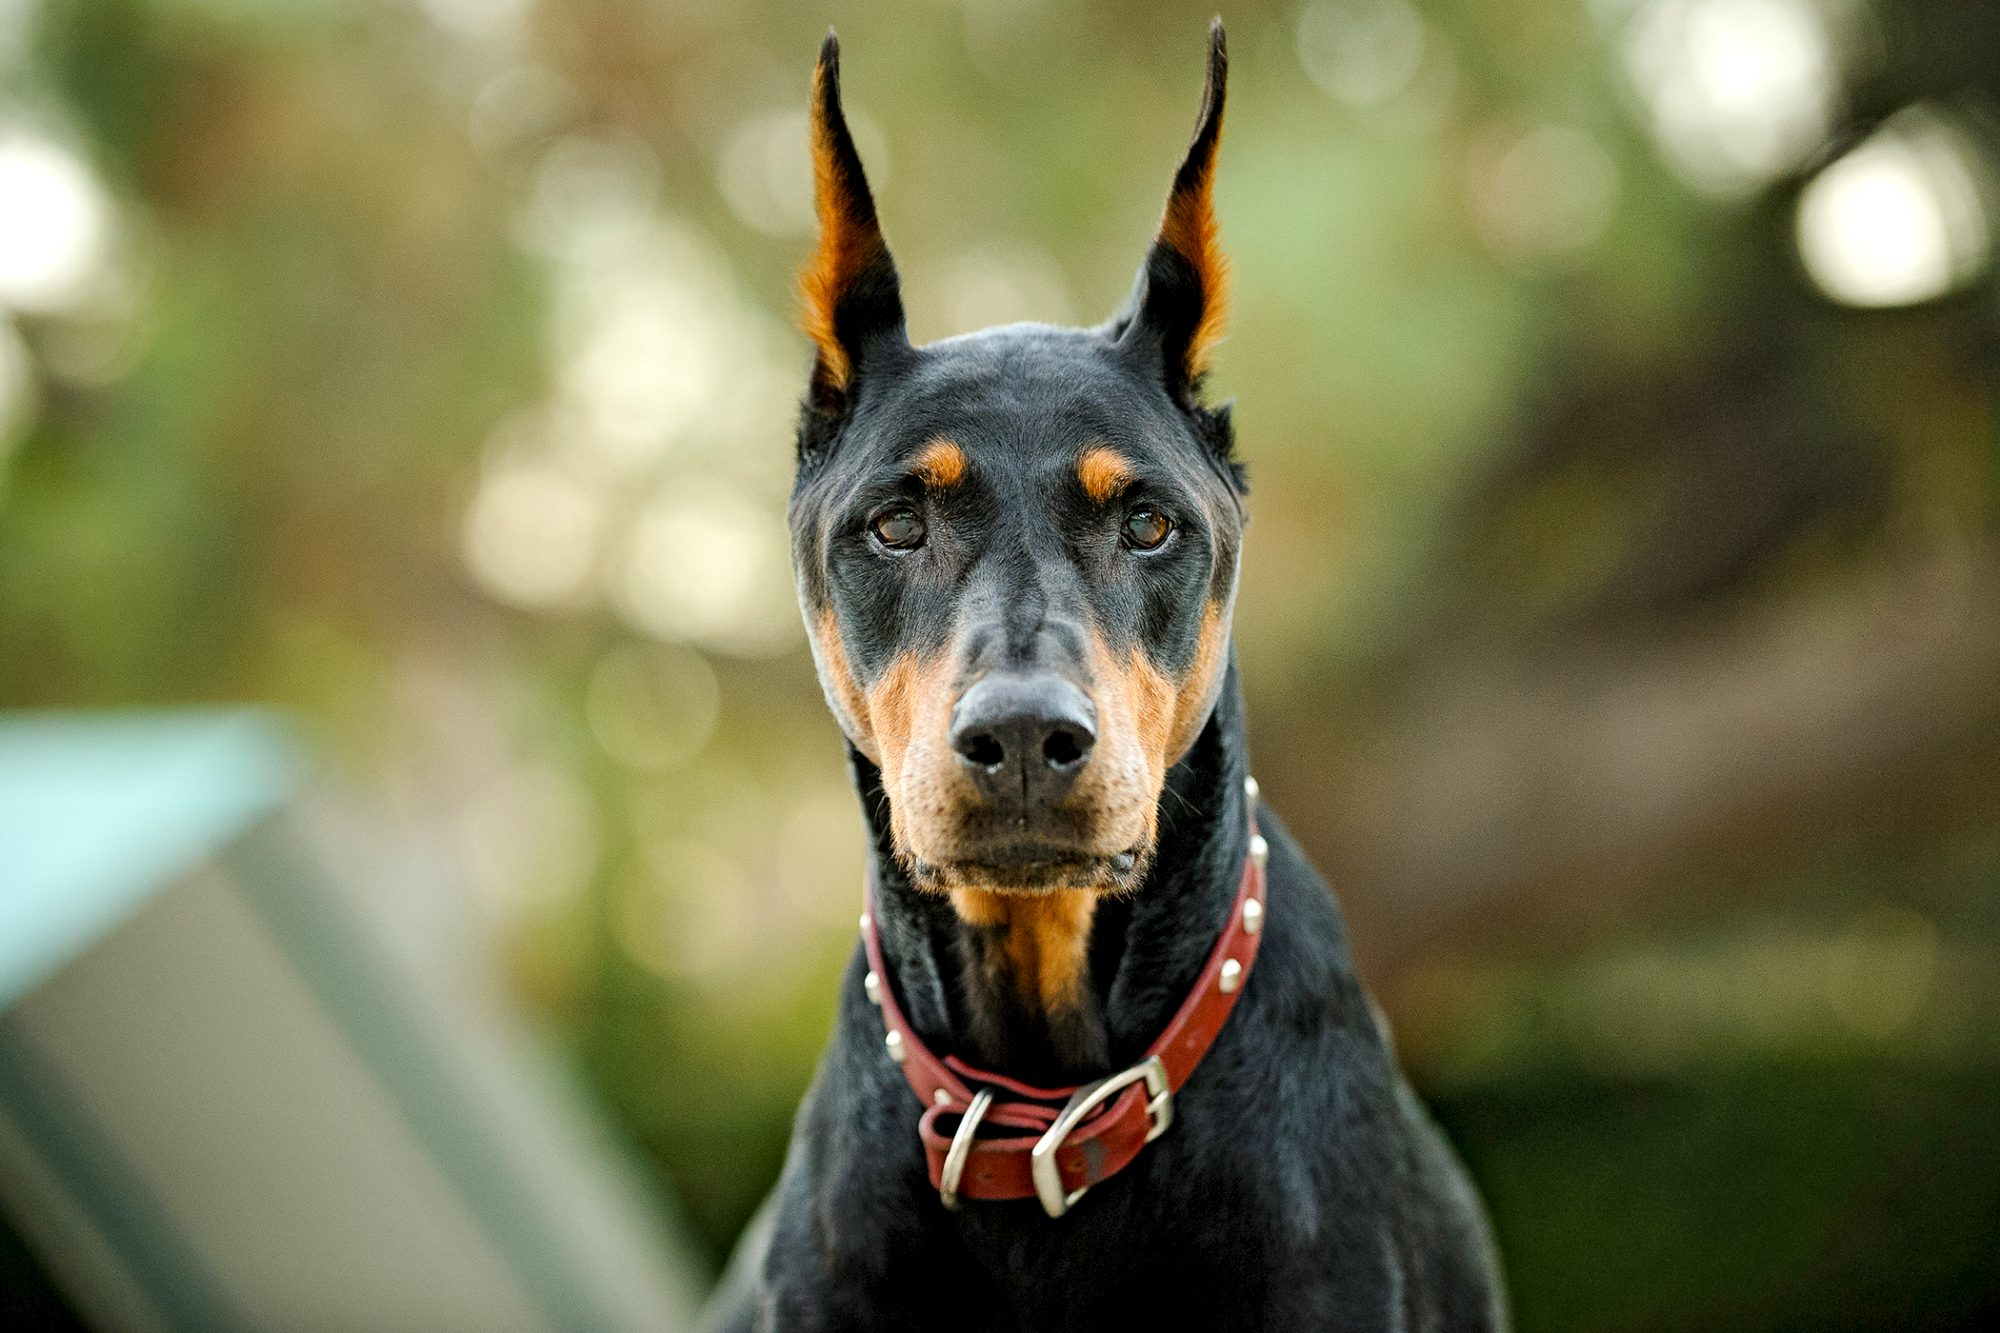 15 of the Smartest Dog Breeds